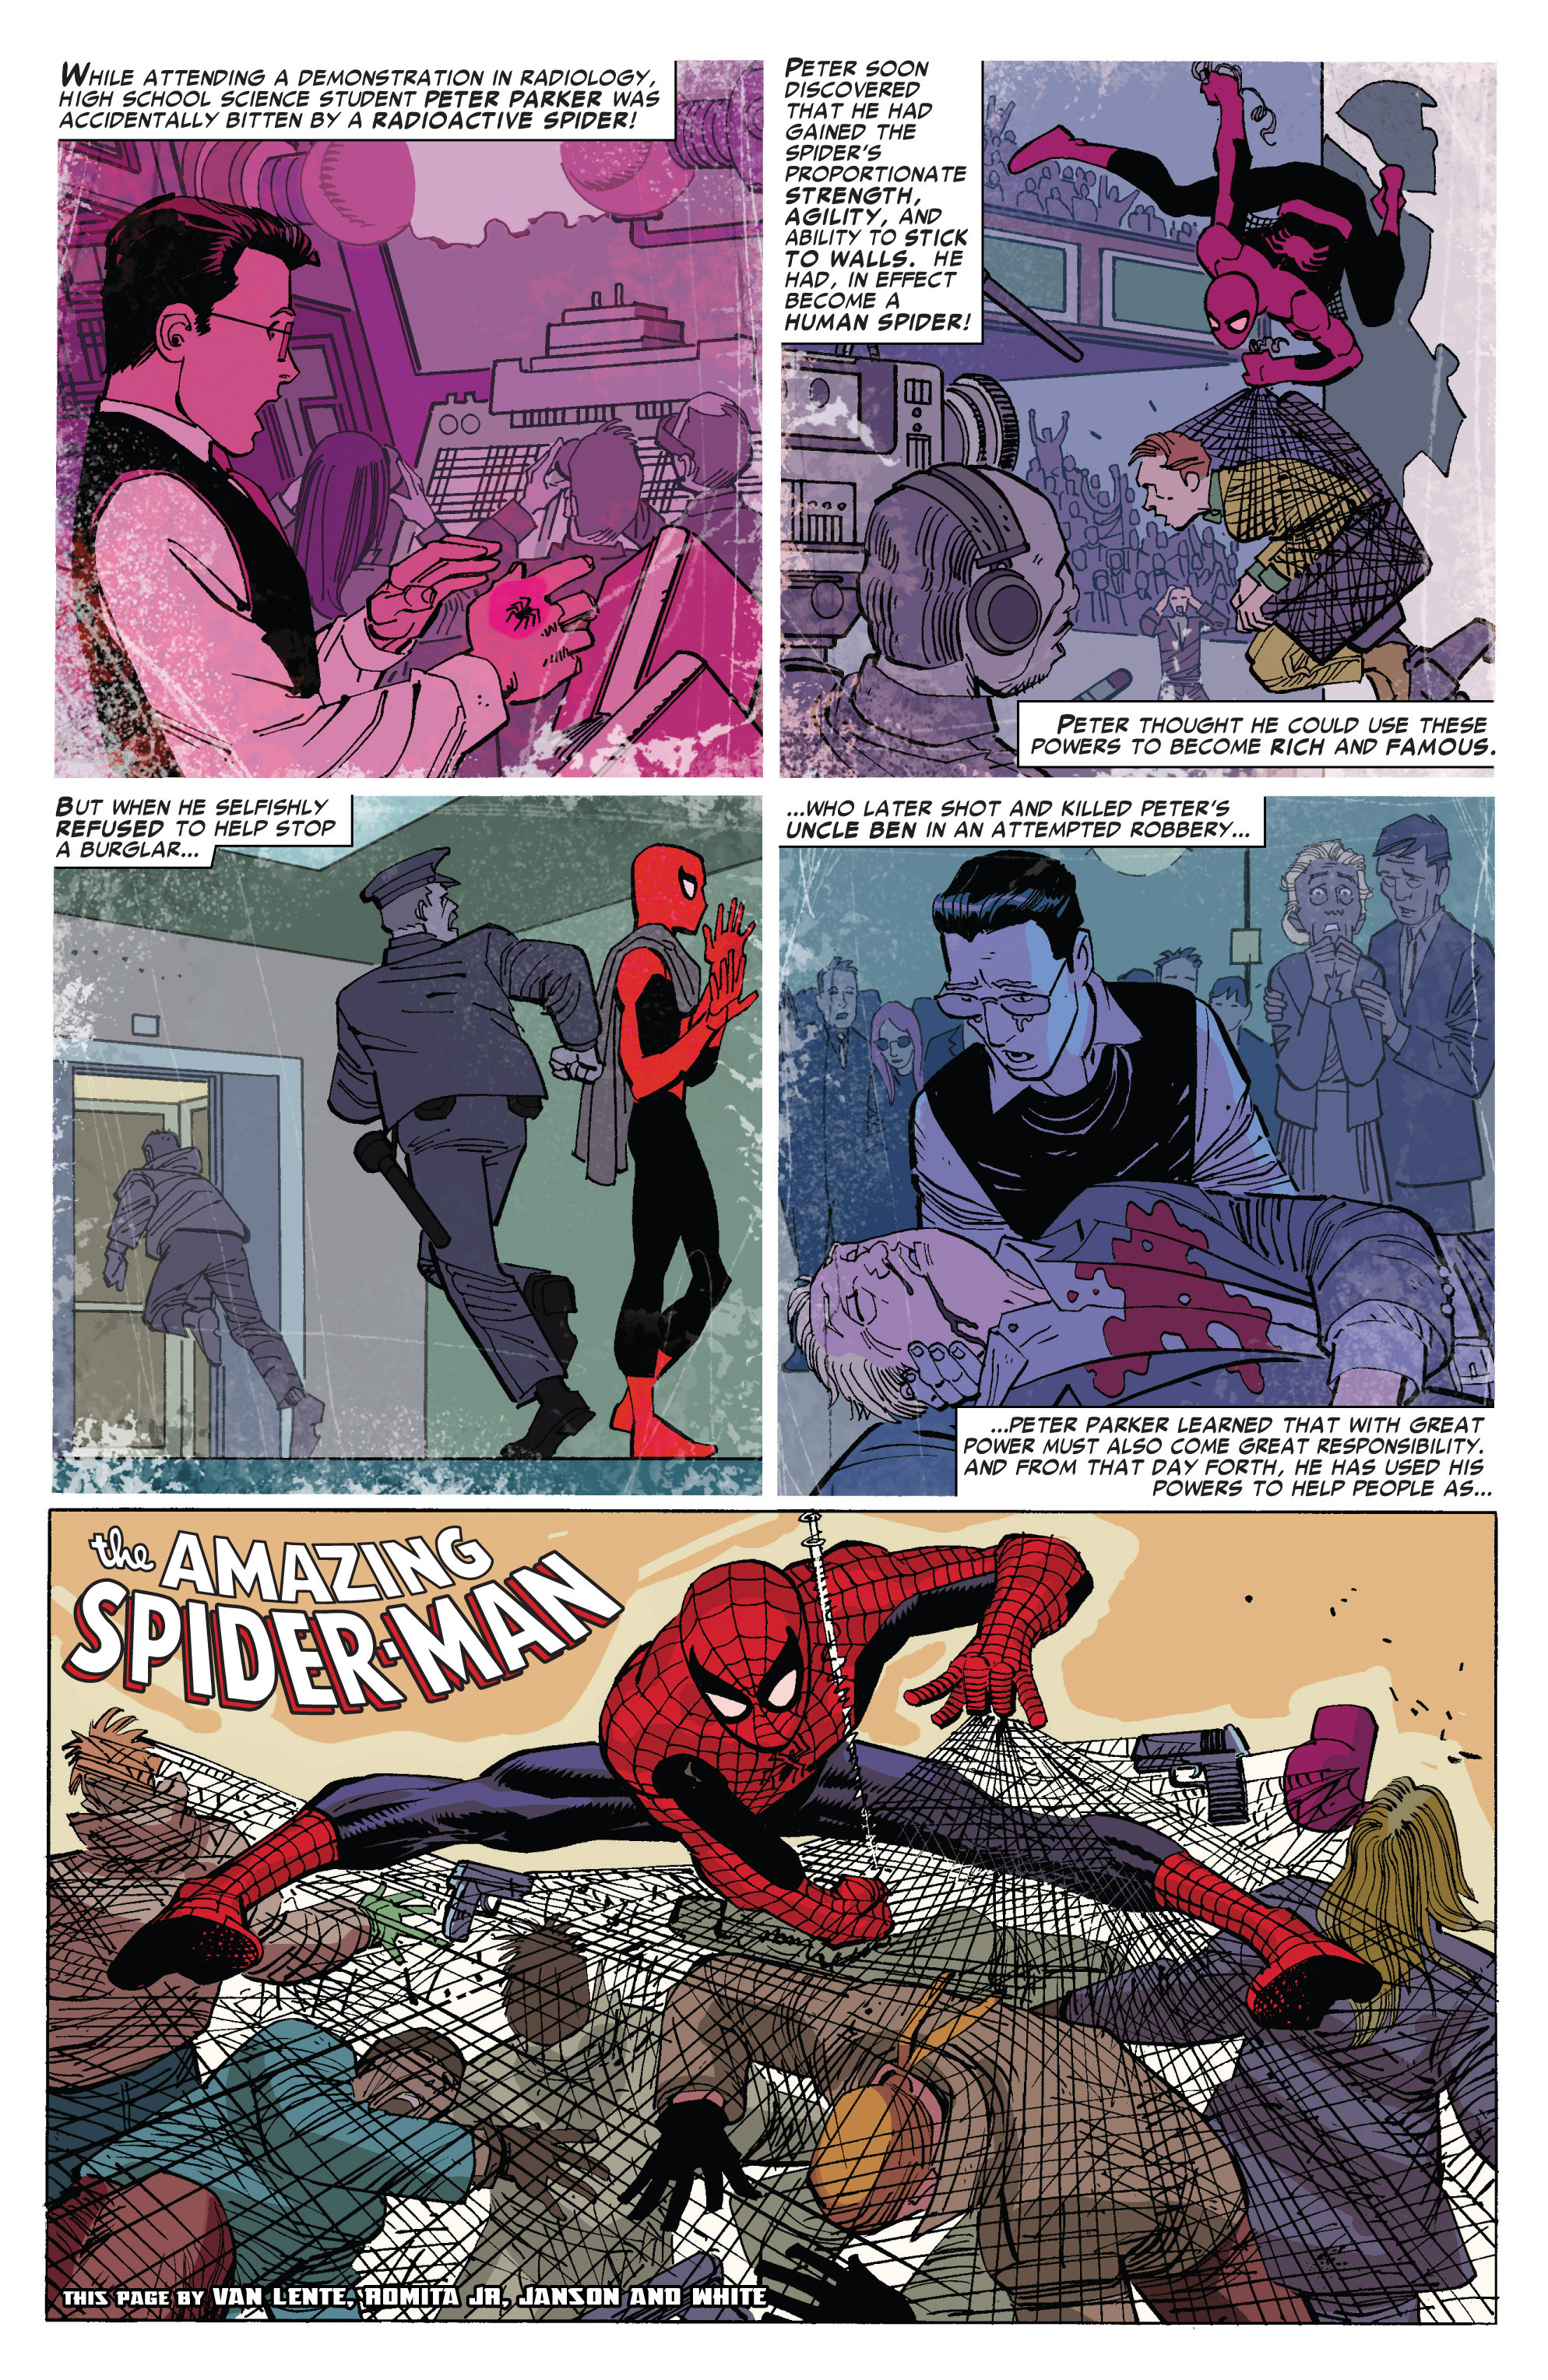 The Amazing Spider-Man (1963) 692 Page 1